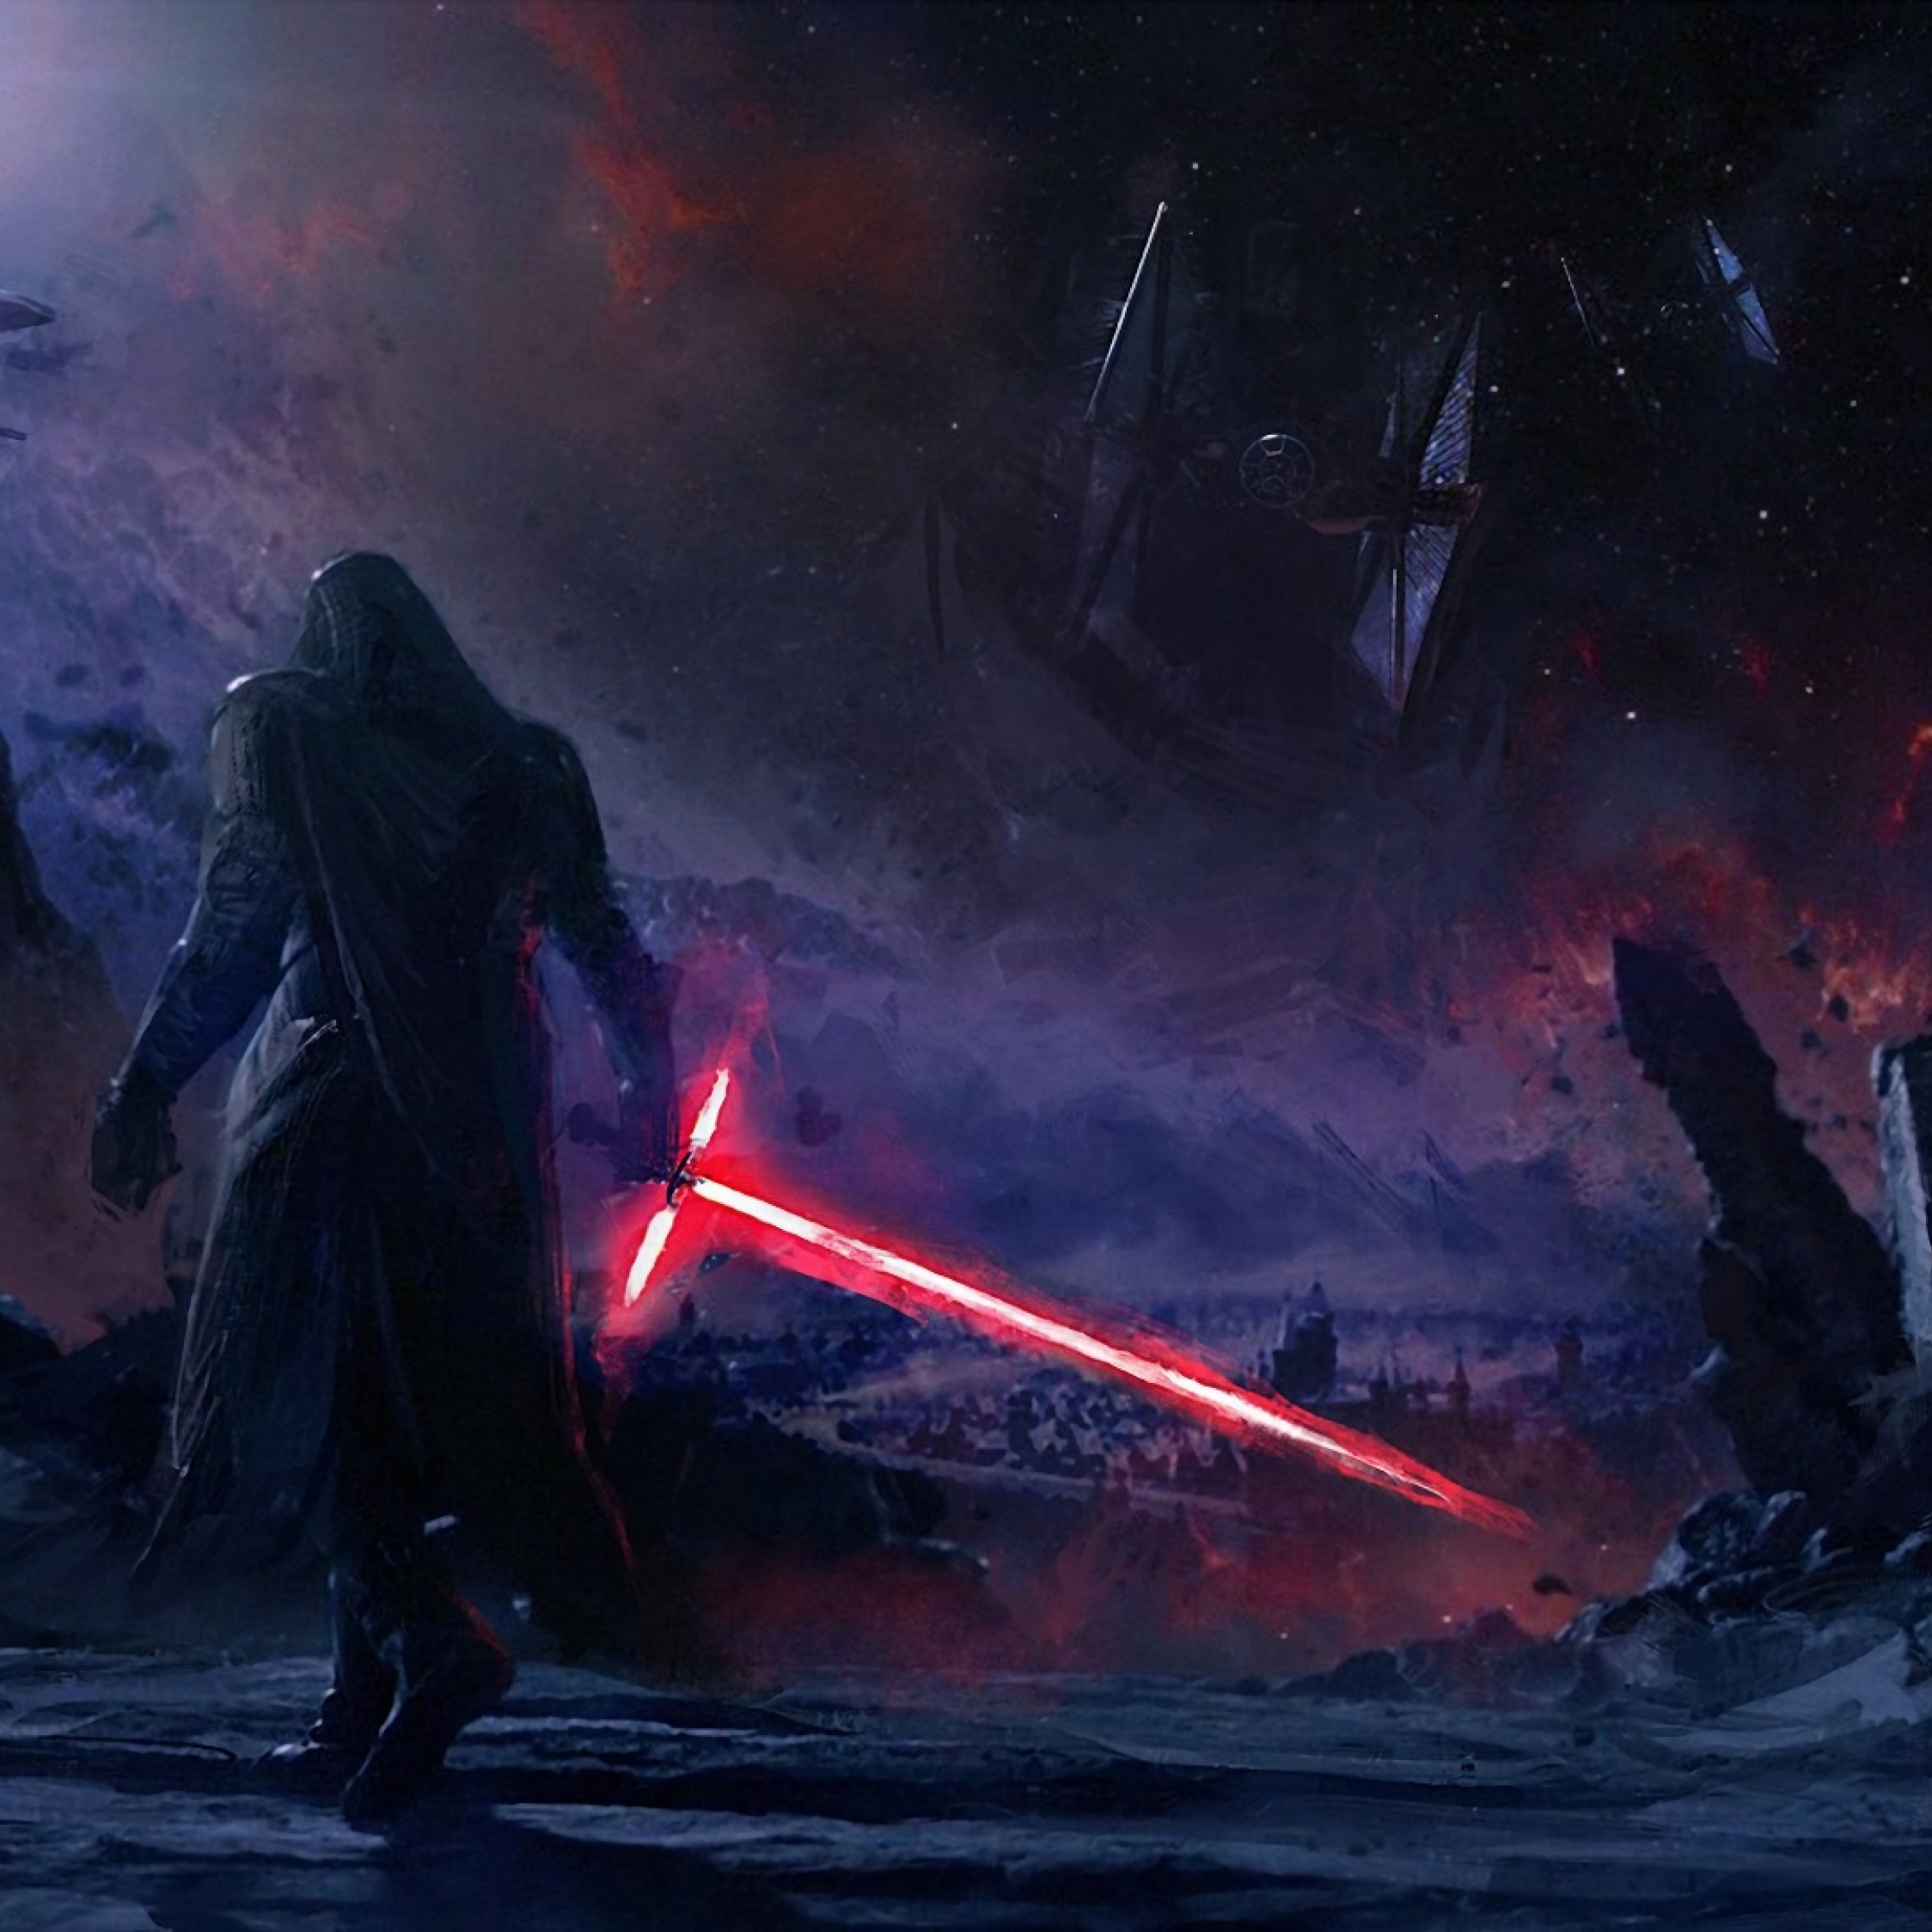 2248x2248 Kylo Ren Star Wars Art 2248x2248 Resolution Wallpaper